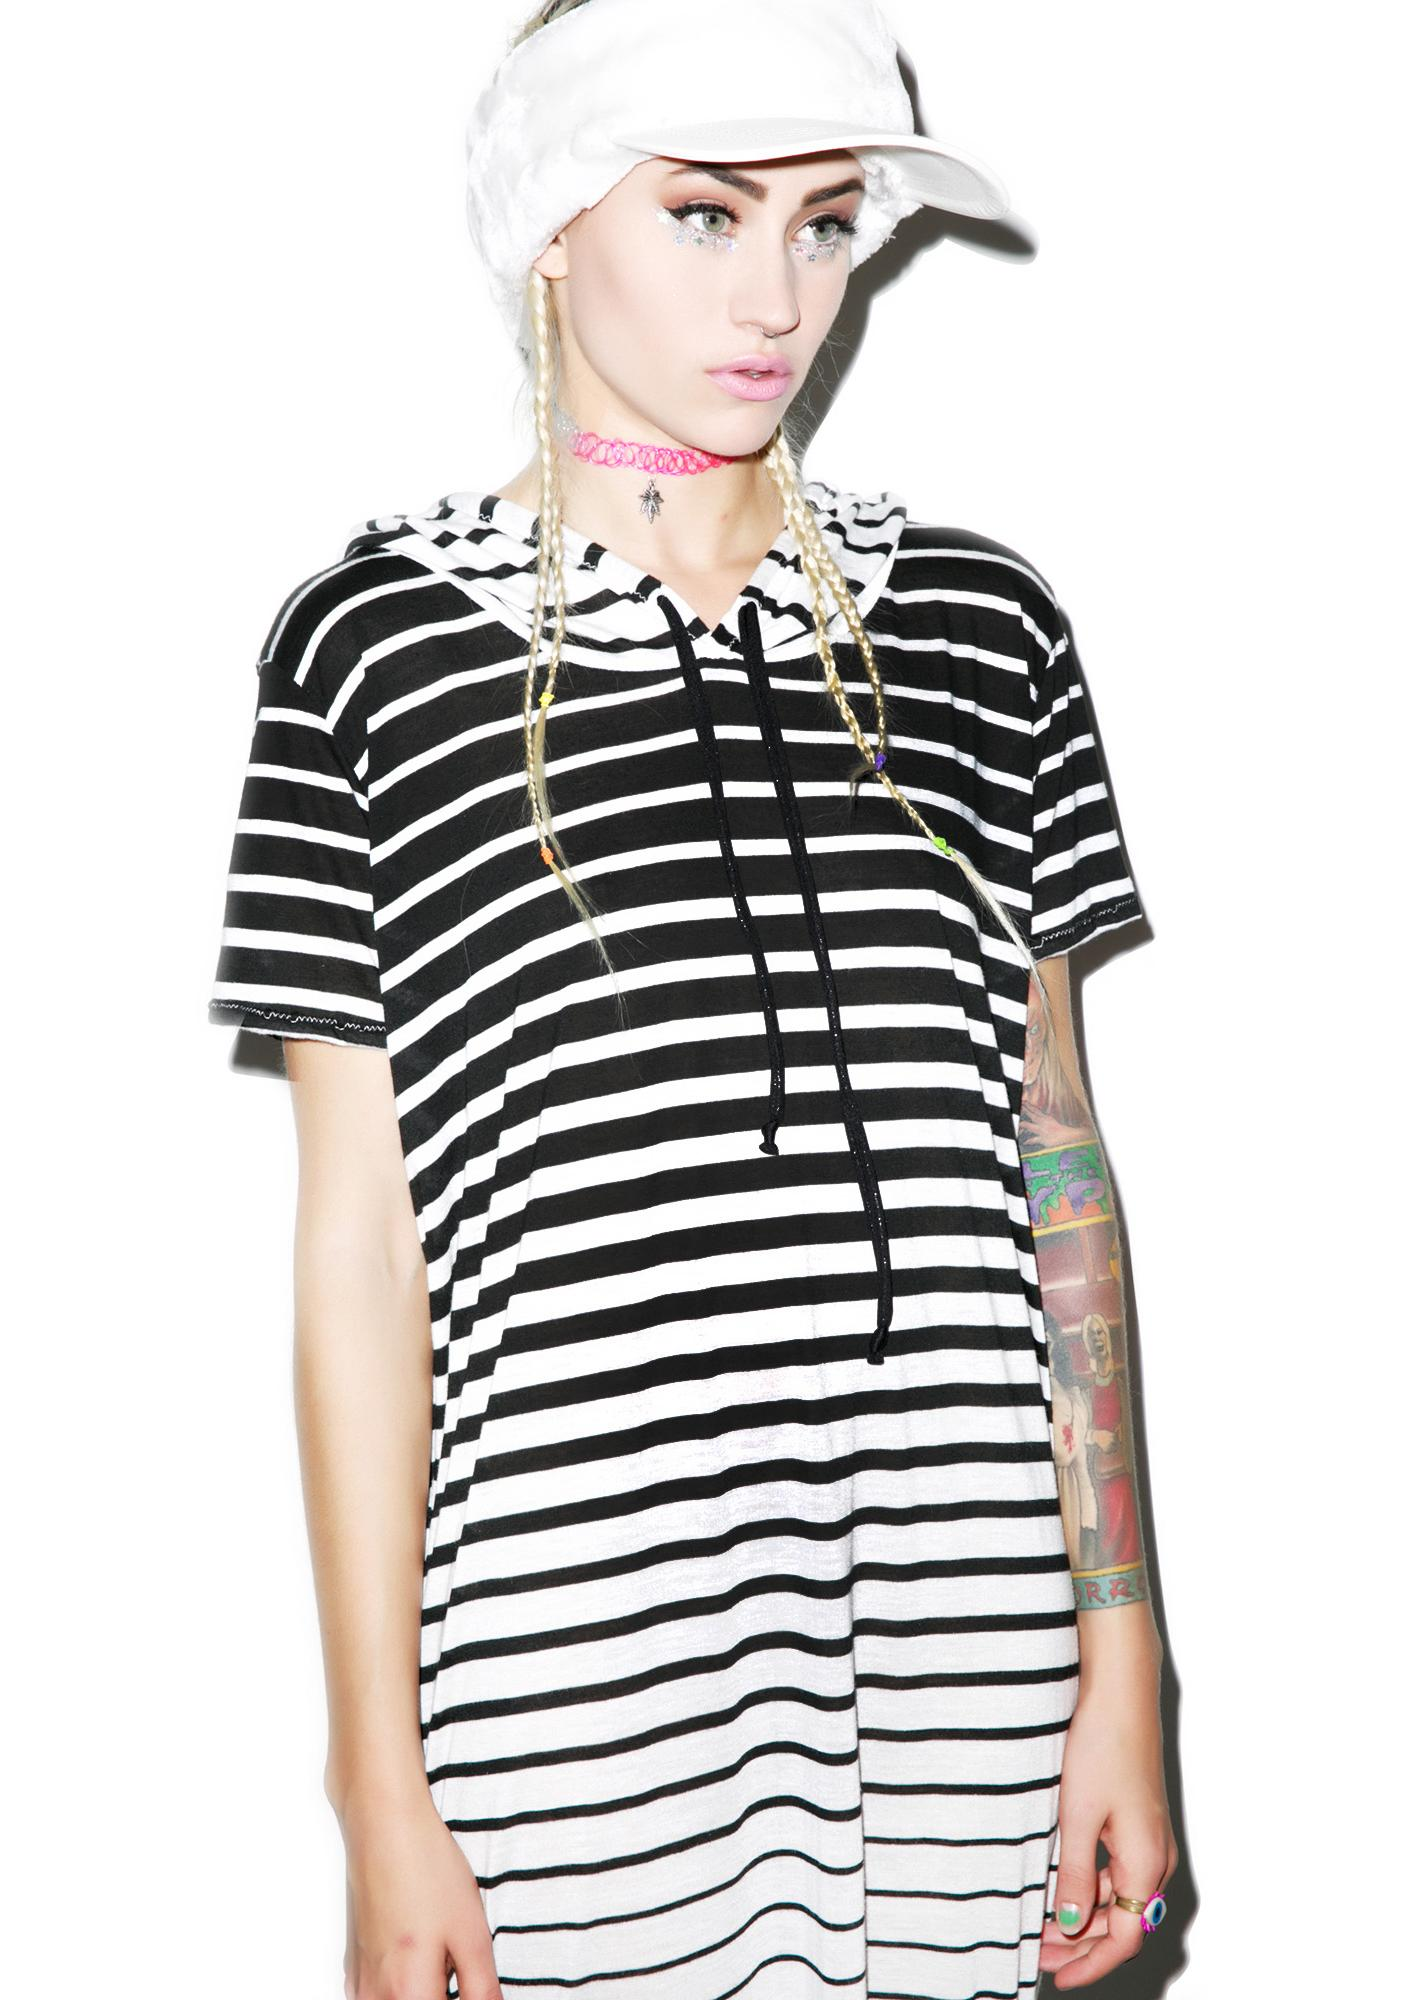 Mamadoux Preppy Goth Hoodie Dress